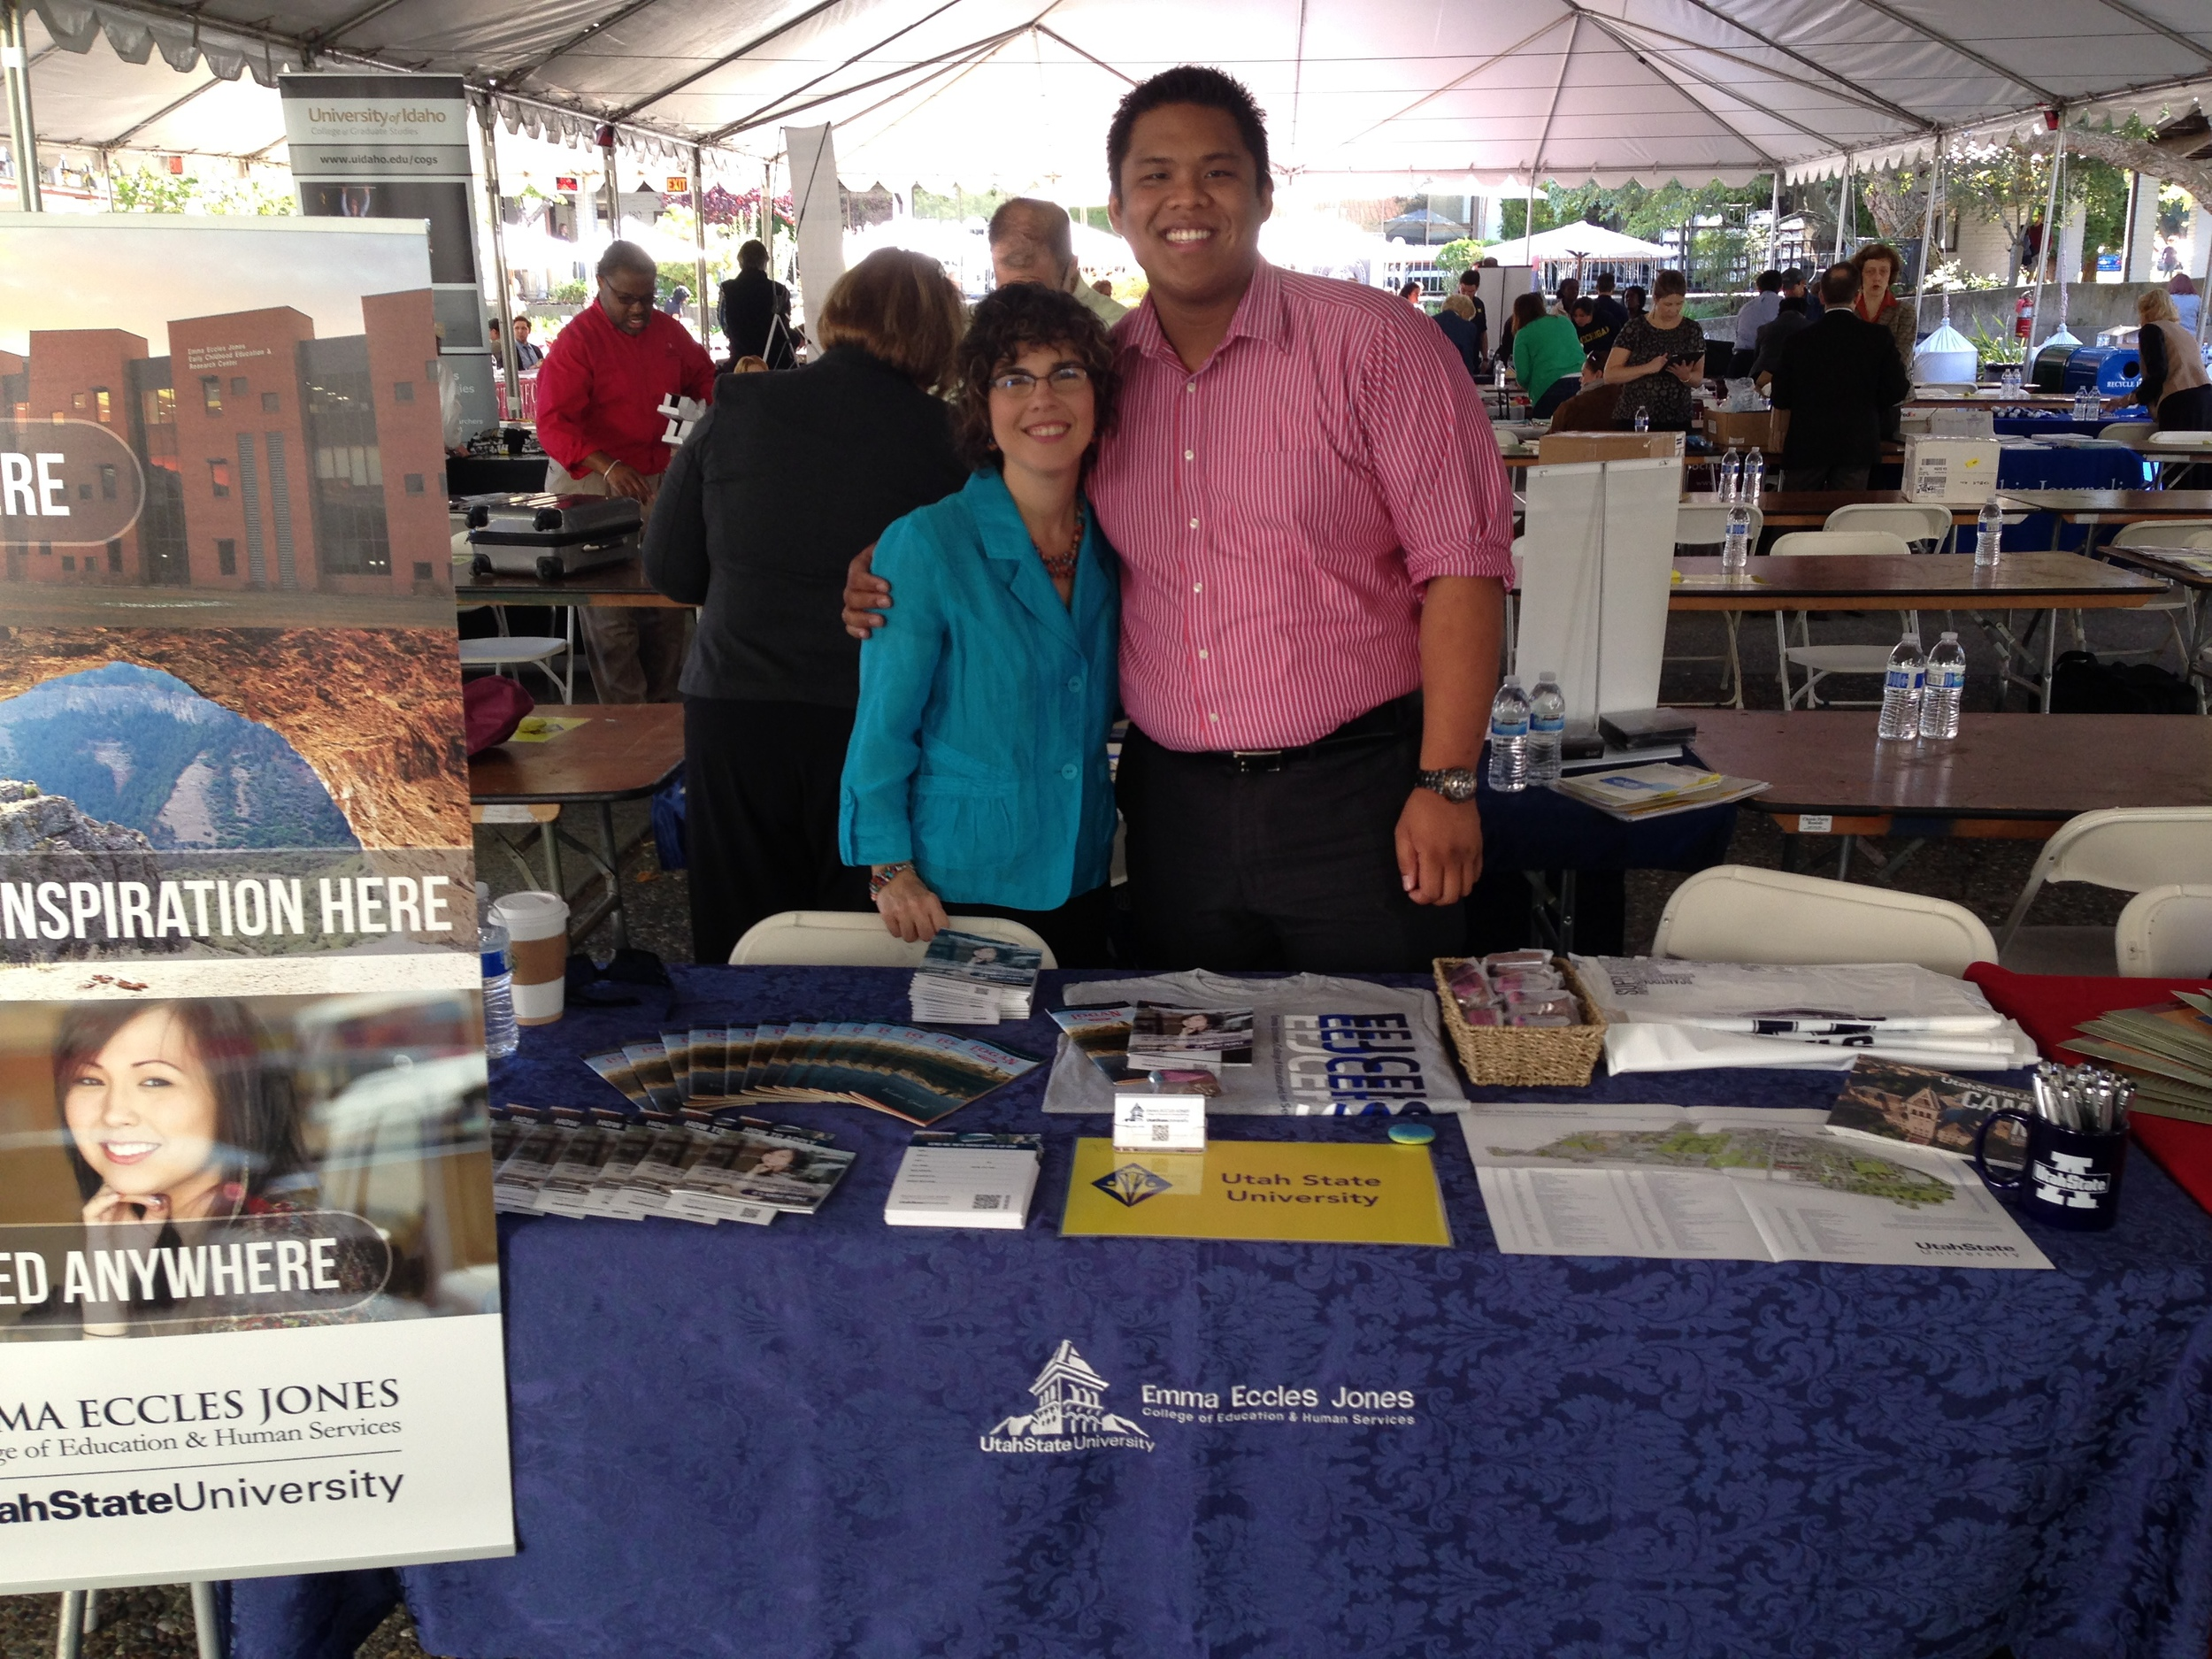 Lesther and Melanie recruiting students at the California Forum for Diversity in Higher Education. October 2013.